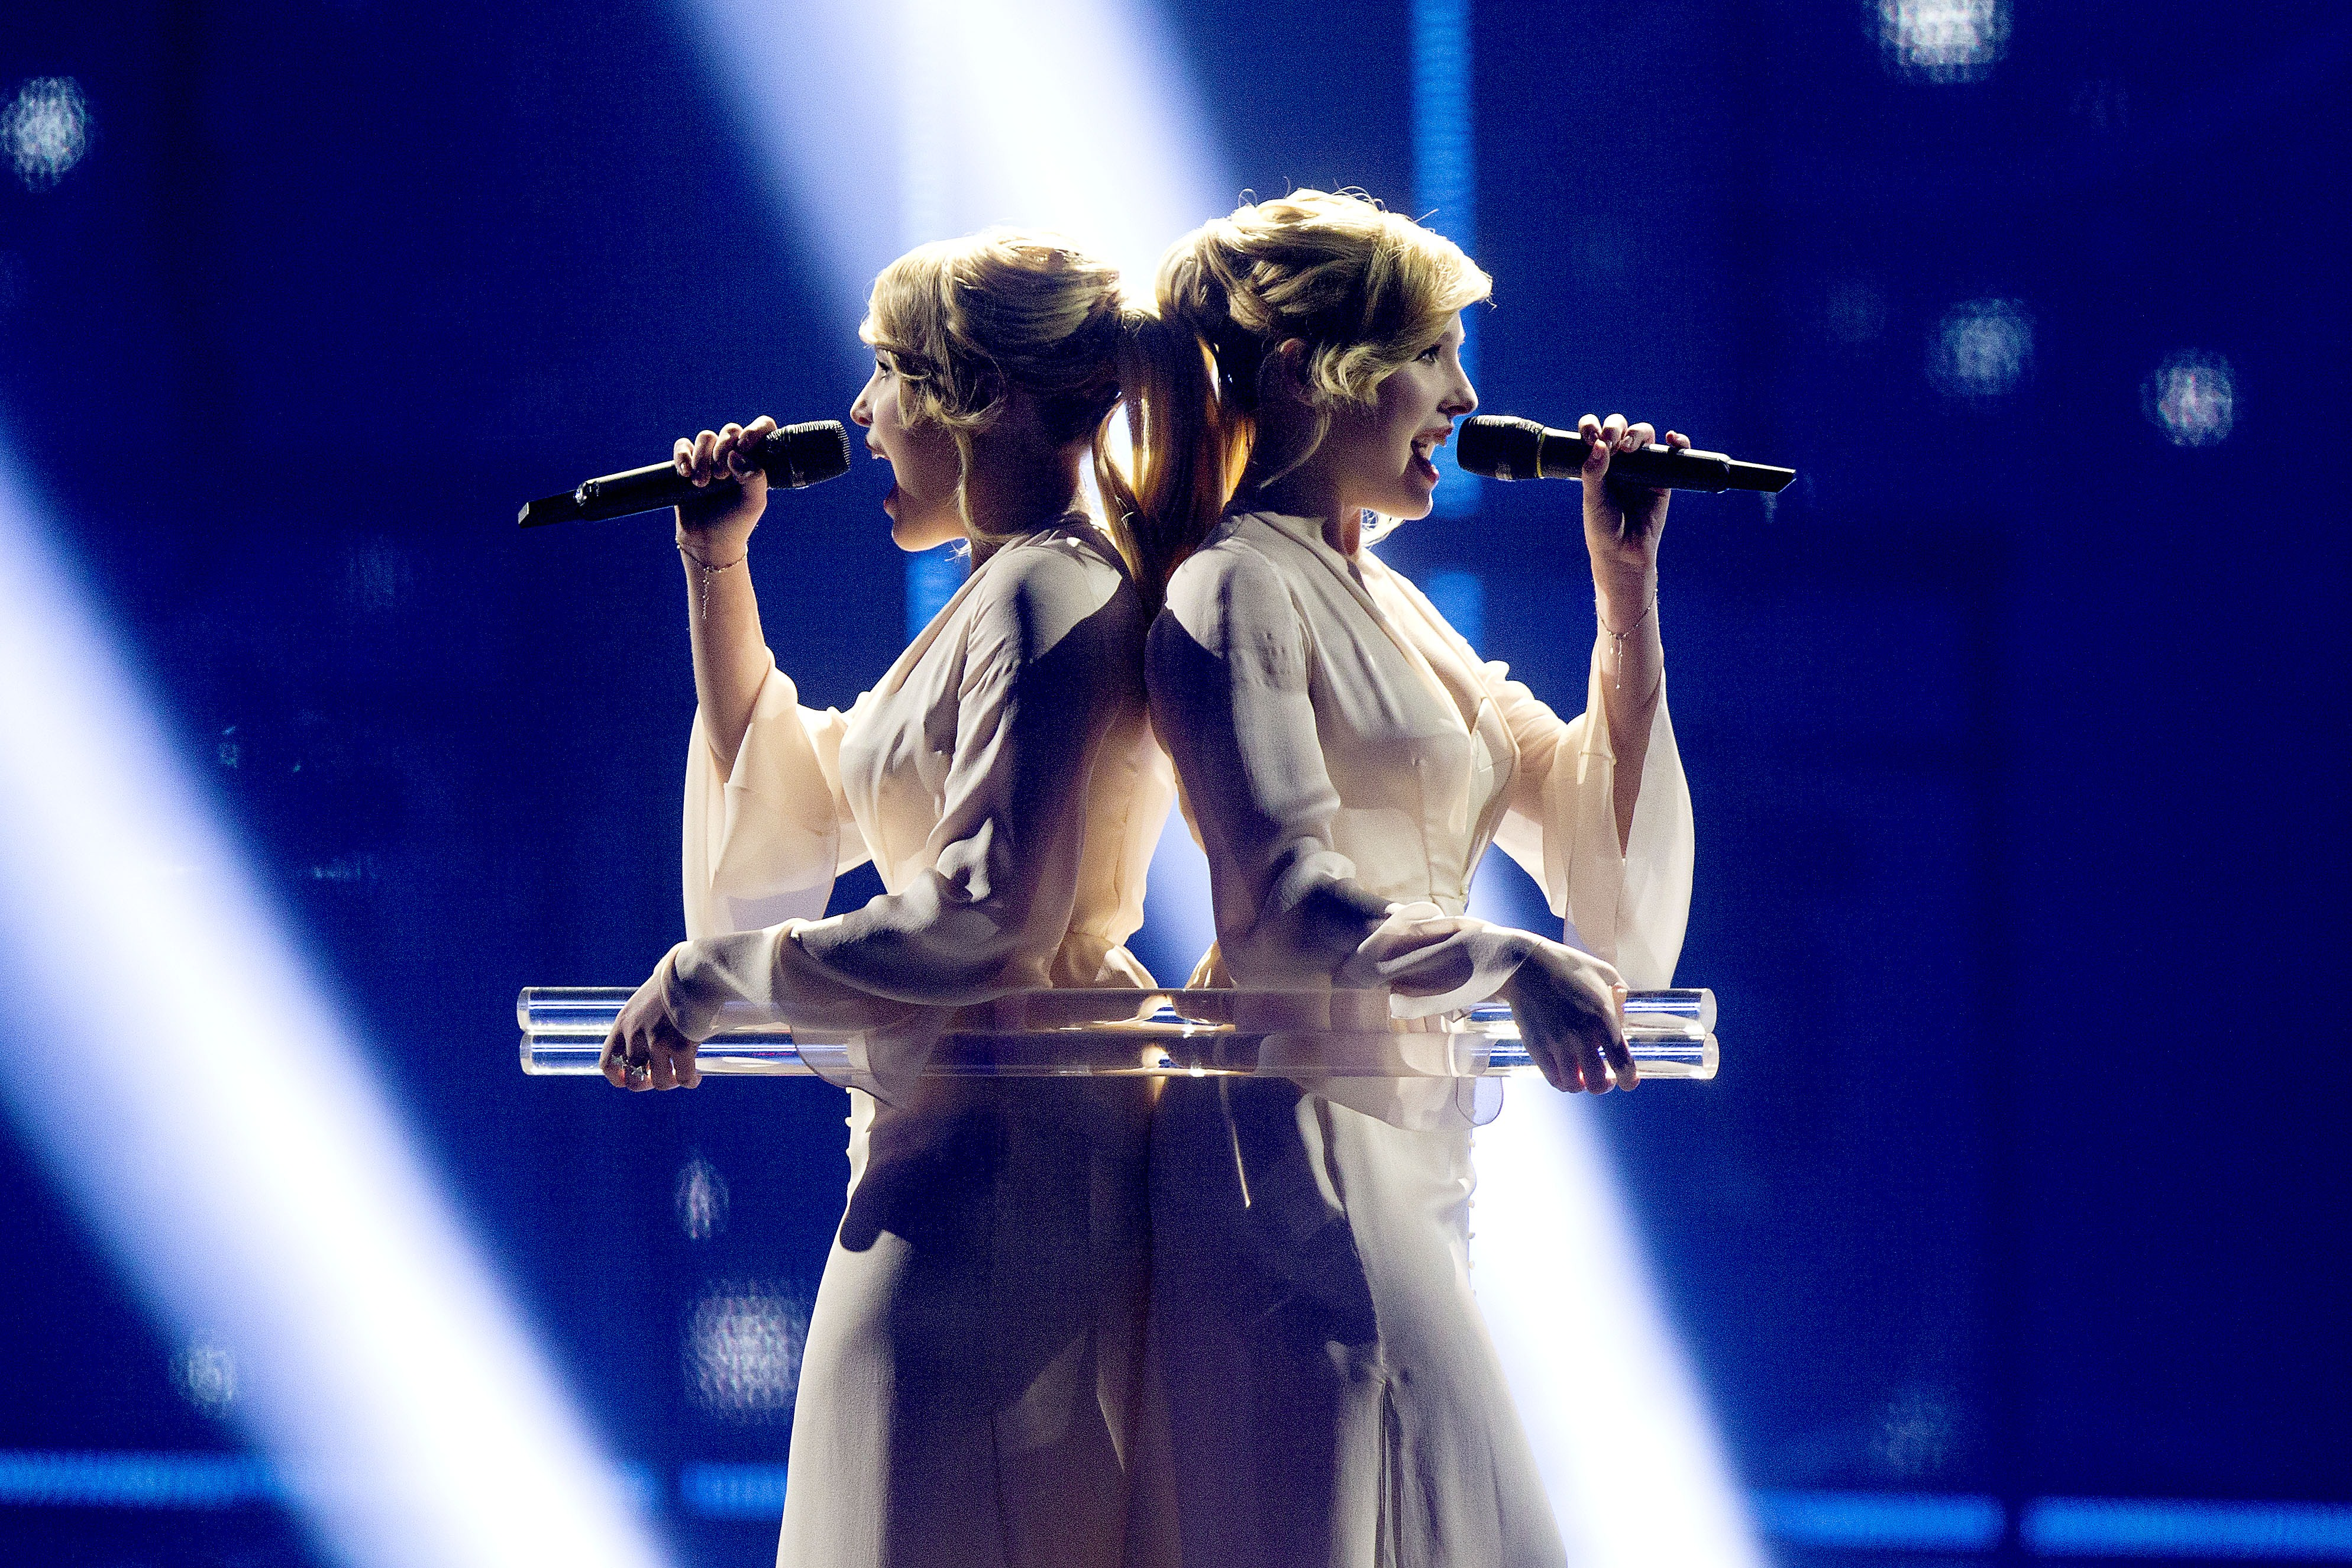 The Tolmachevy Sisters representing Russia performs during the first semi-final at Eurovision Village as part of Eurovision 2014, on May 6, 2014 in Copenhagen, Denmark. The final of the competition will be held in the Danish capital on May 10, 2014.